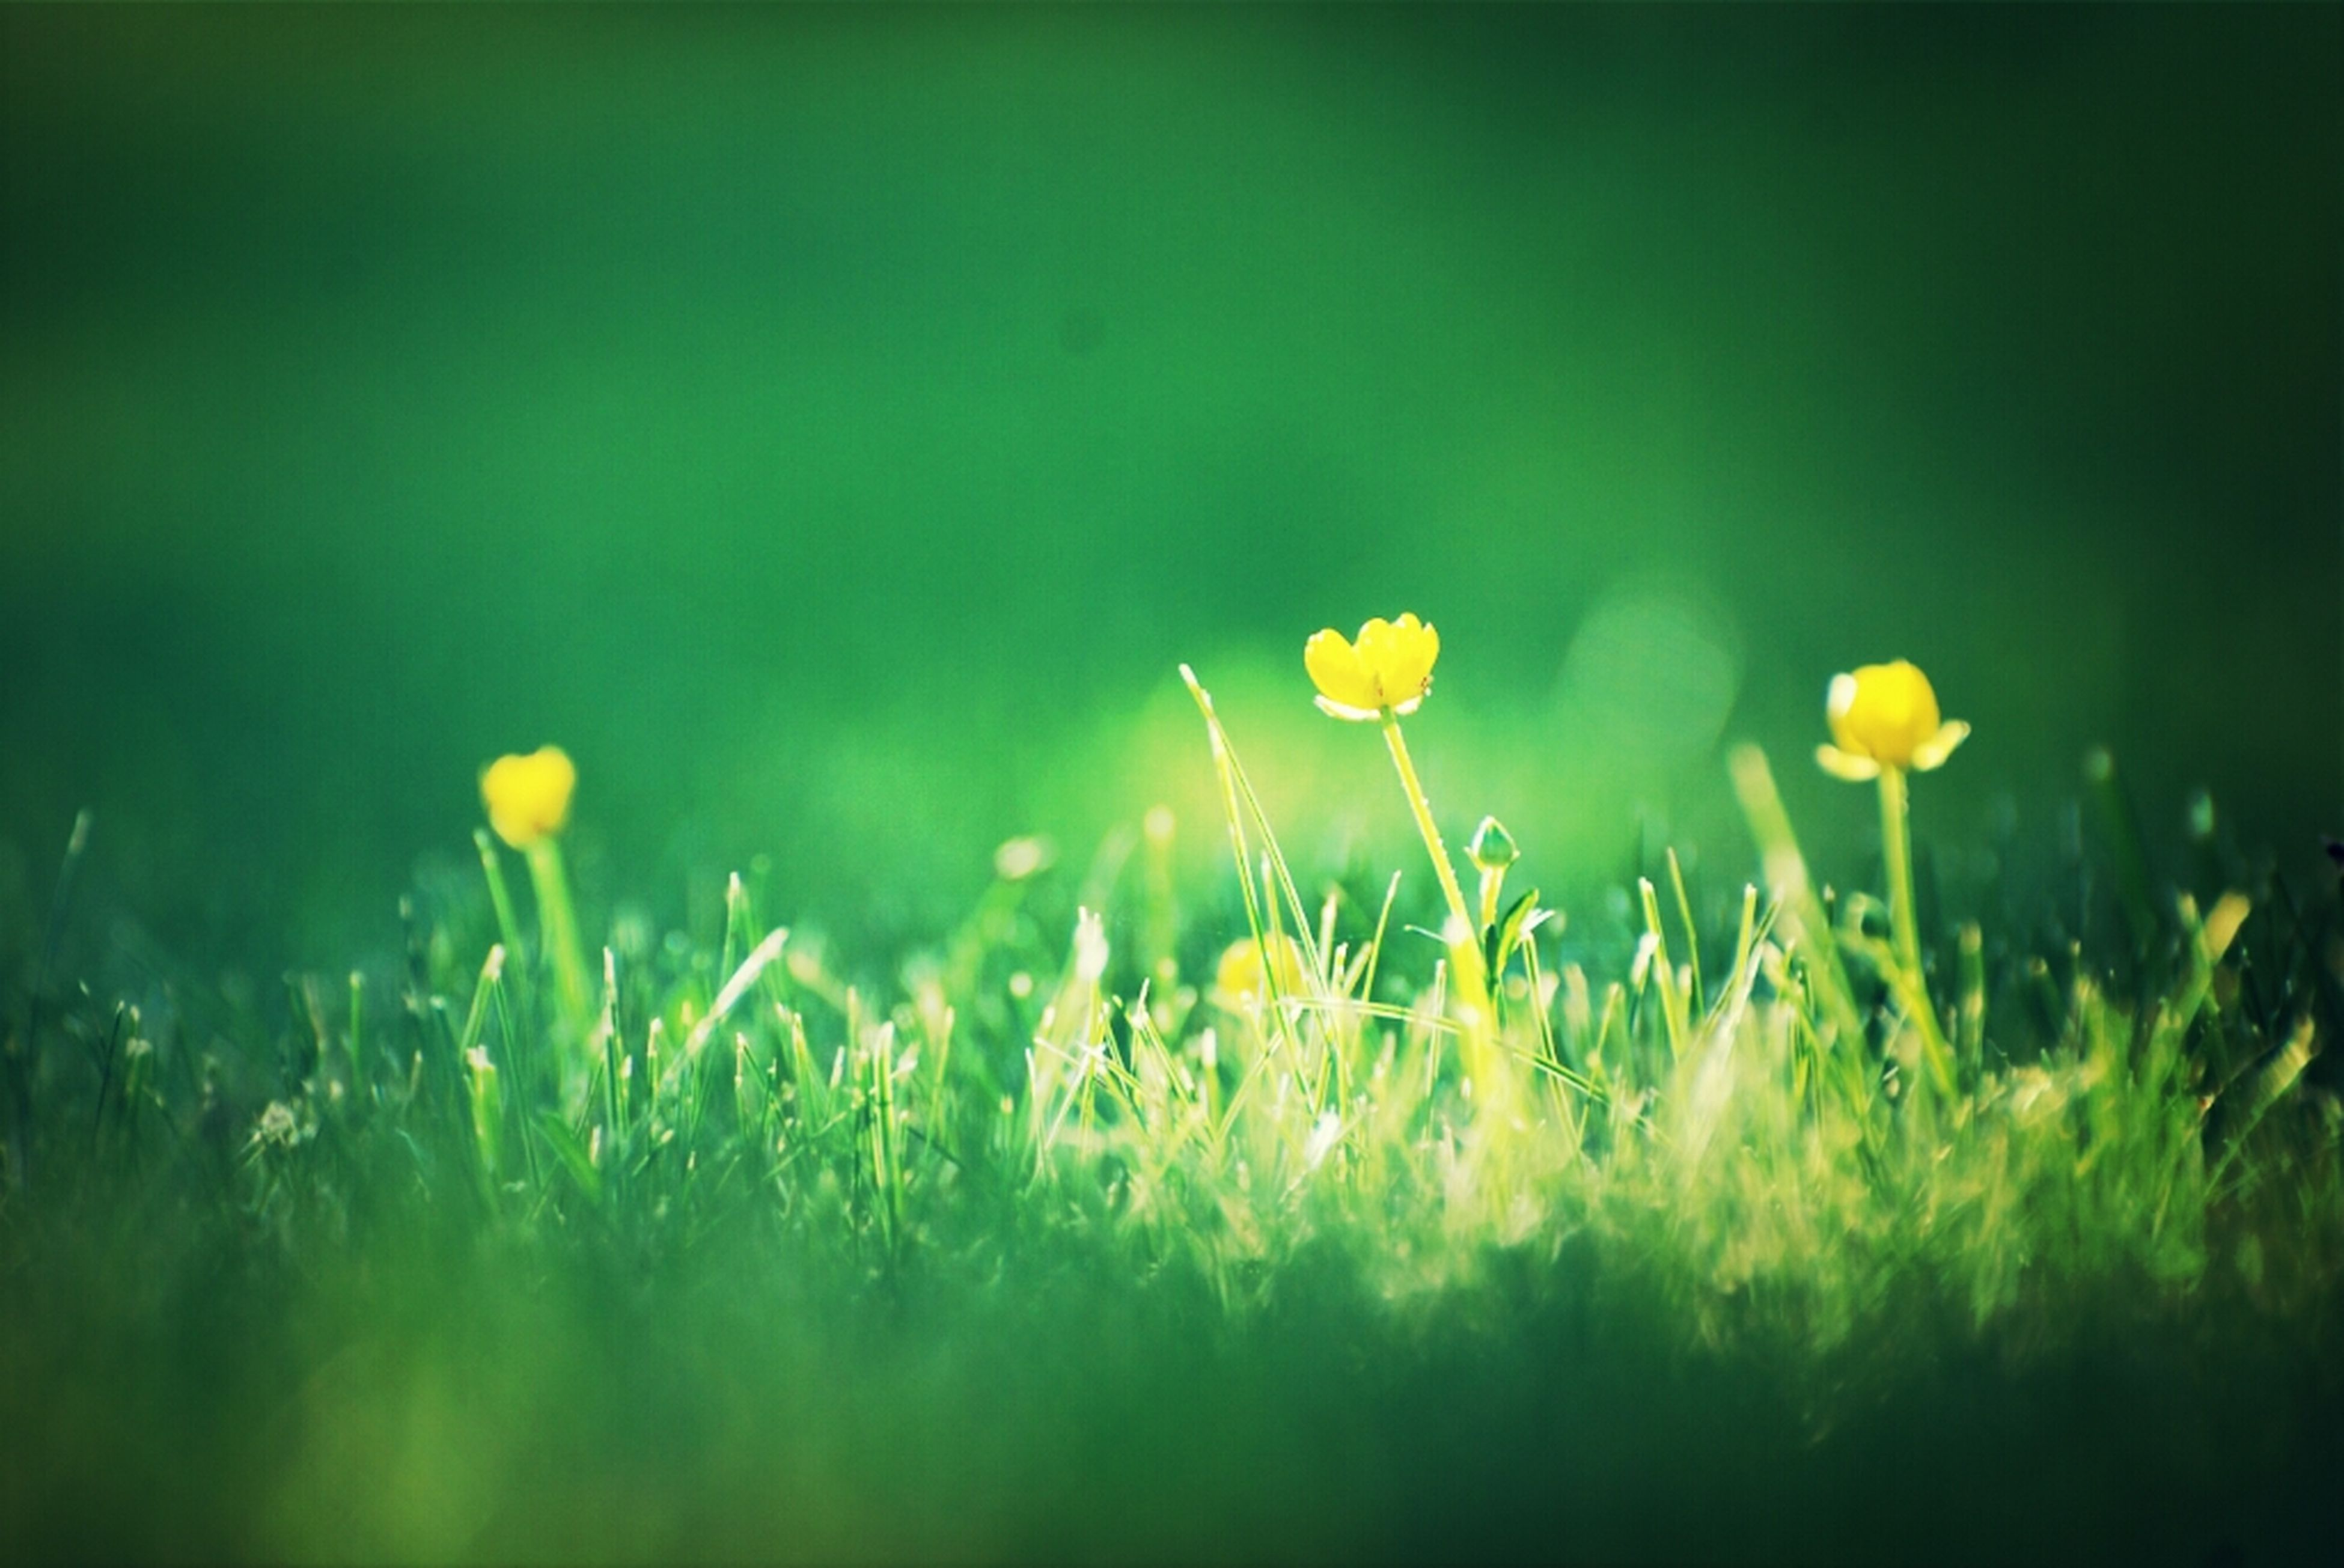 growth, flower, field, grass, freshness, beauty in nature, nature, fragility, plant, selective focus, yellow, green color, close-up, stem, focus on foreground, wildflower, dandelion, outdoors, tranquility, growing